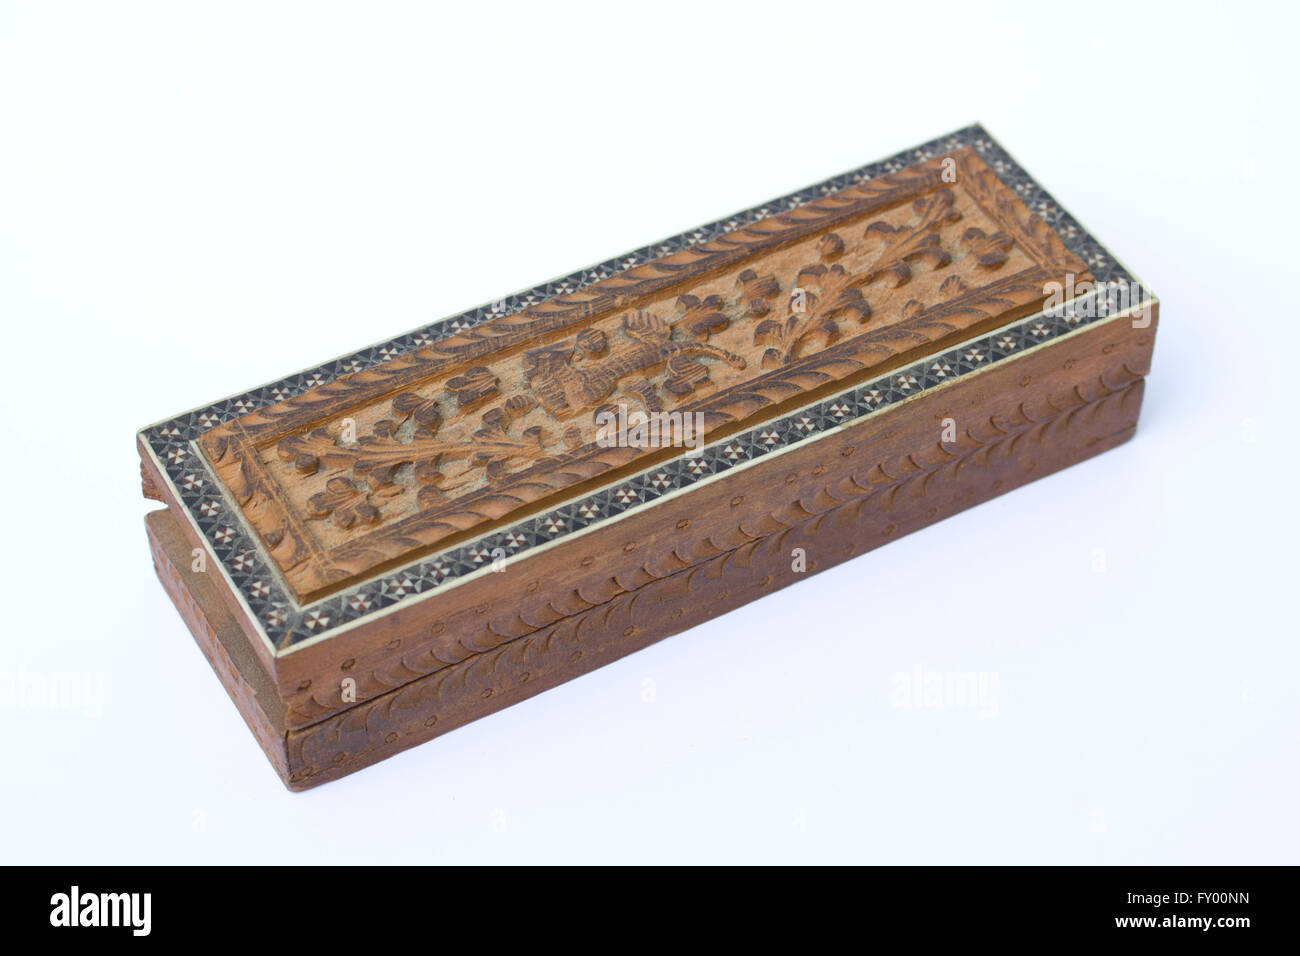 Vintage Small Wooden Box on White Background Stock Photo